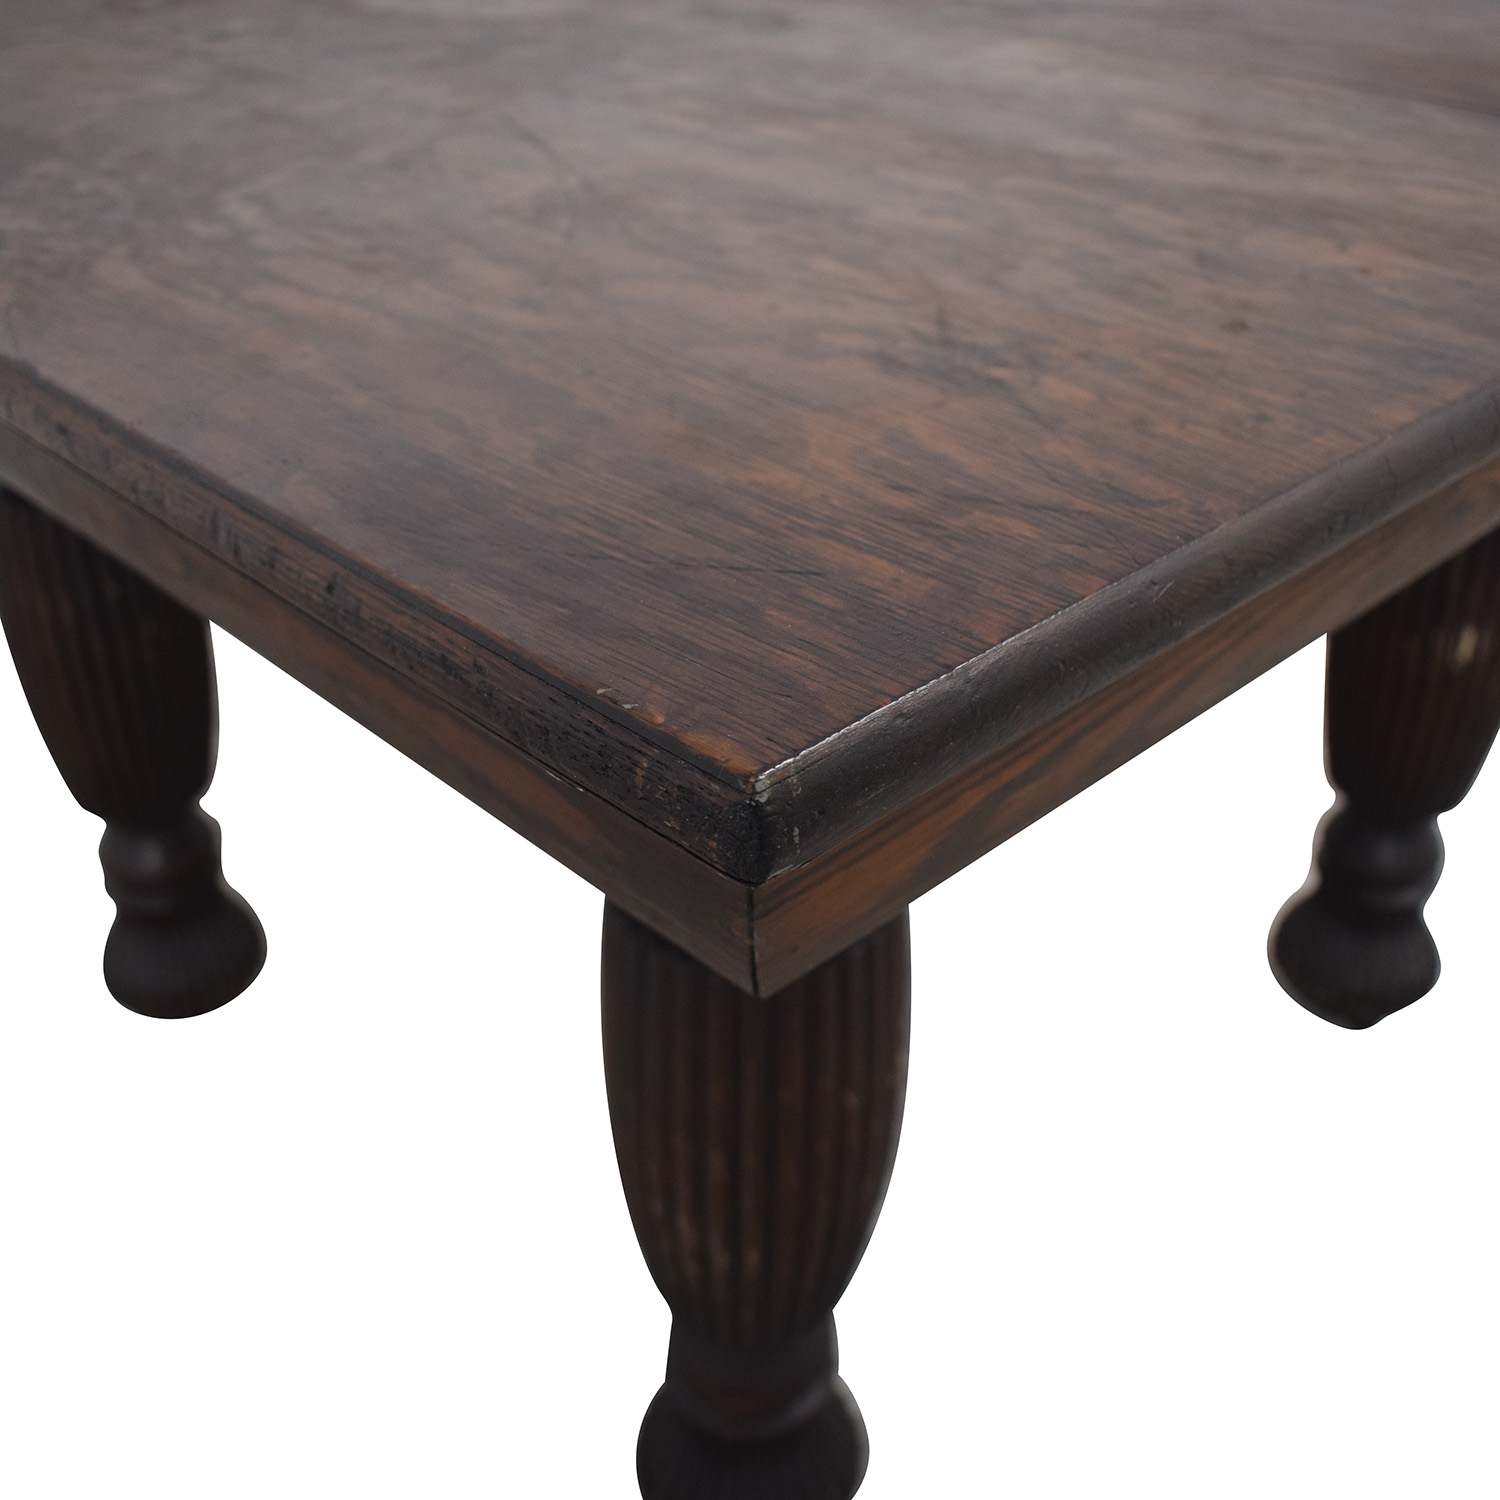 Antique Extendable Dining Table / Dinner Tables